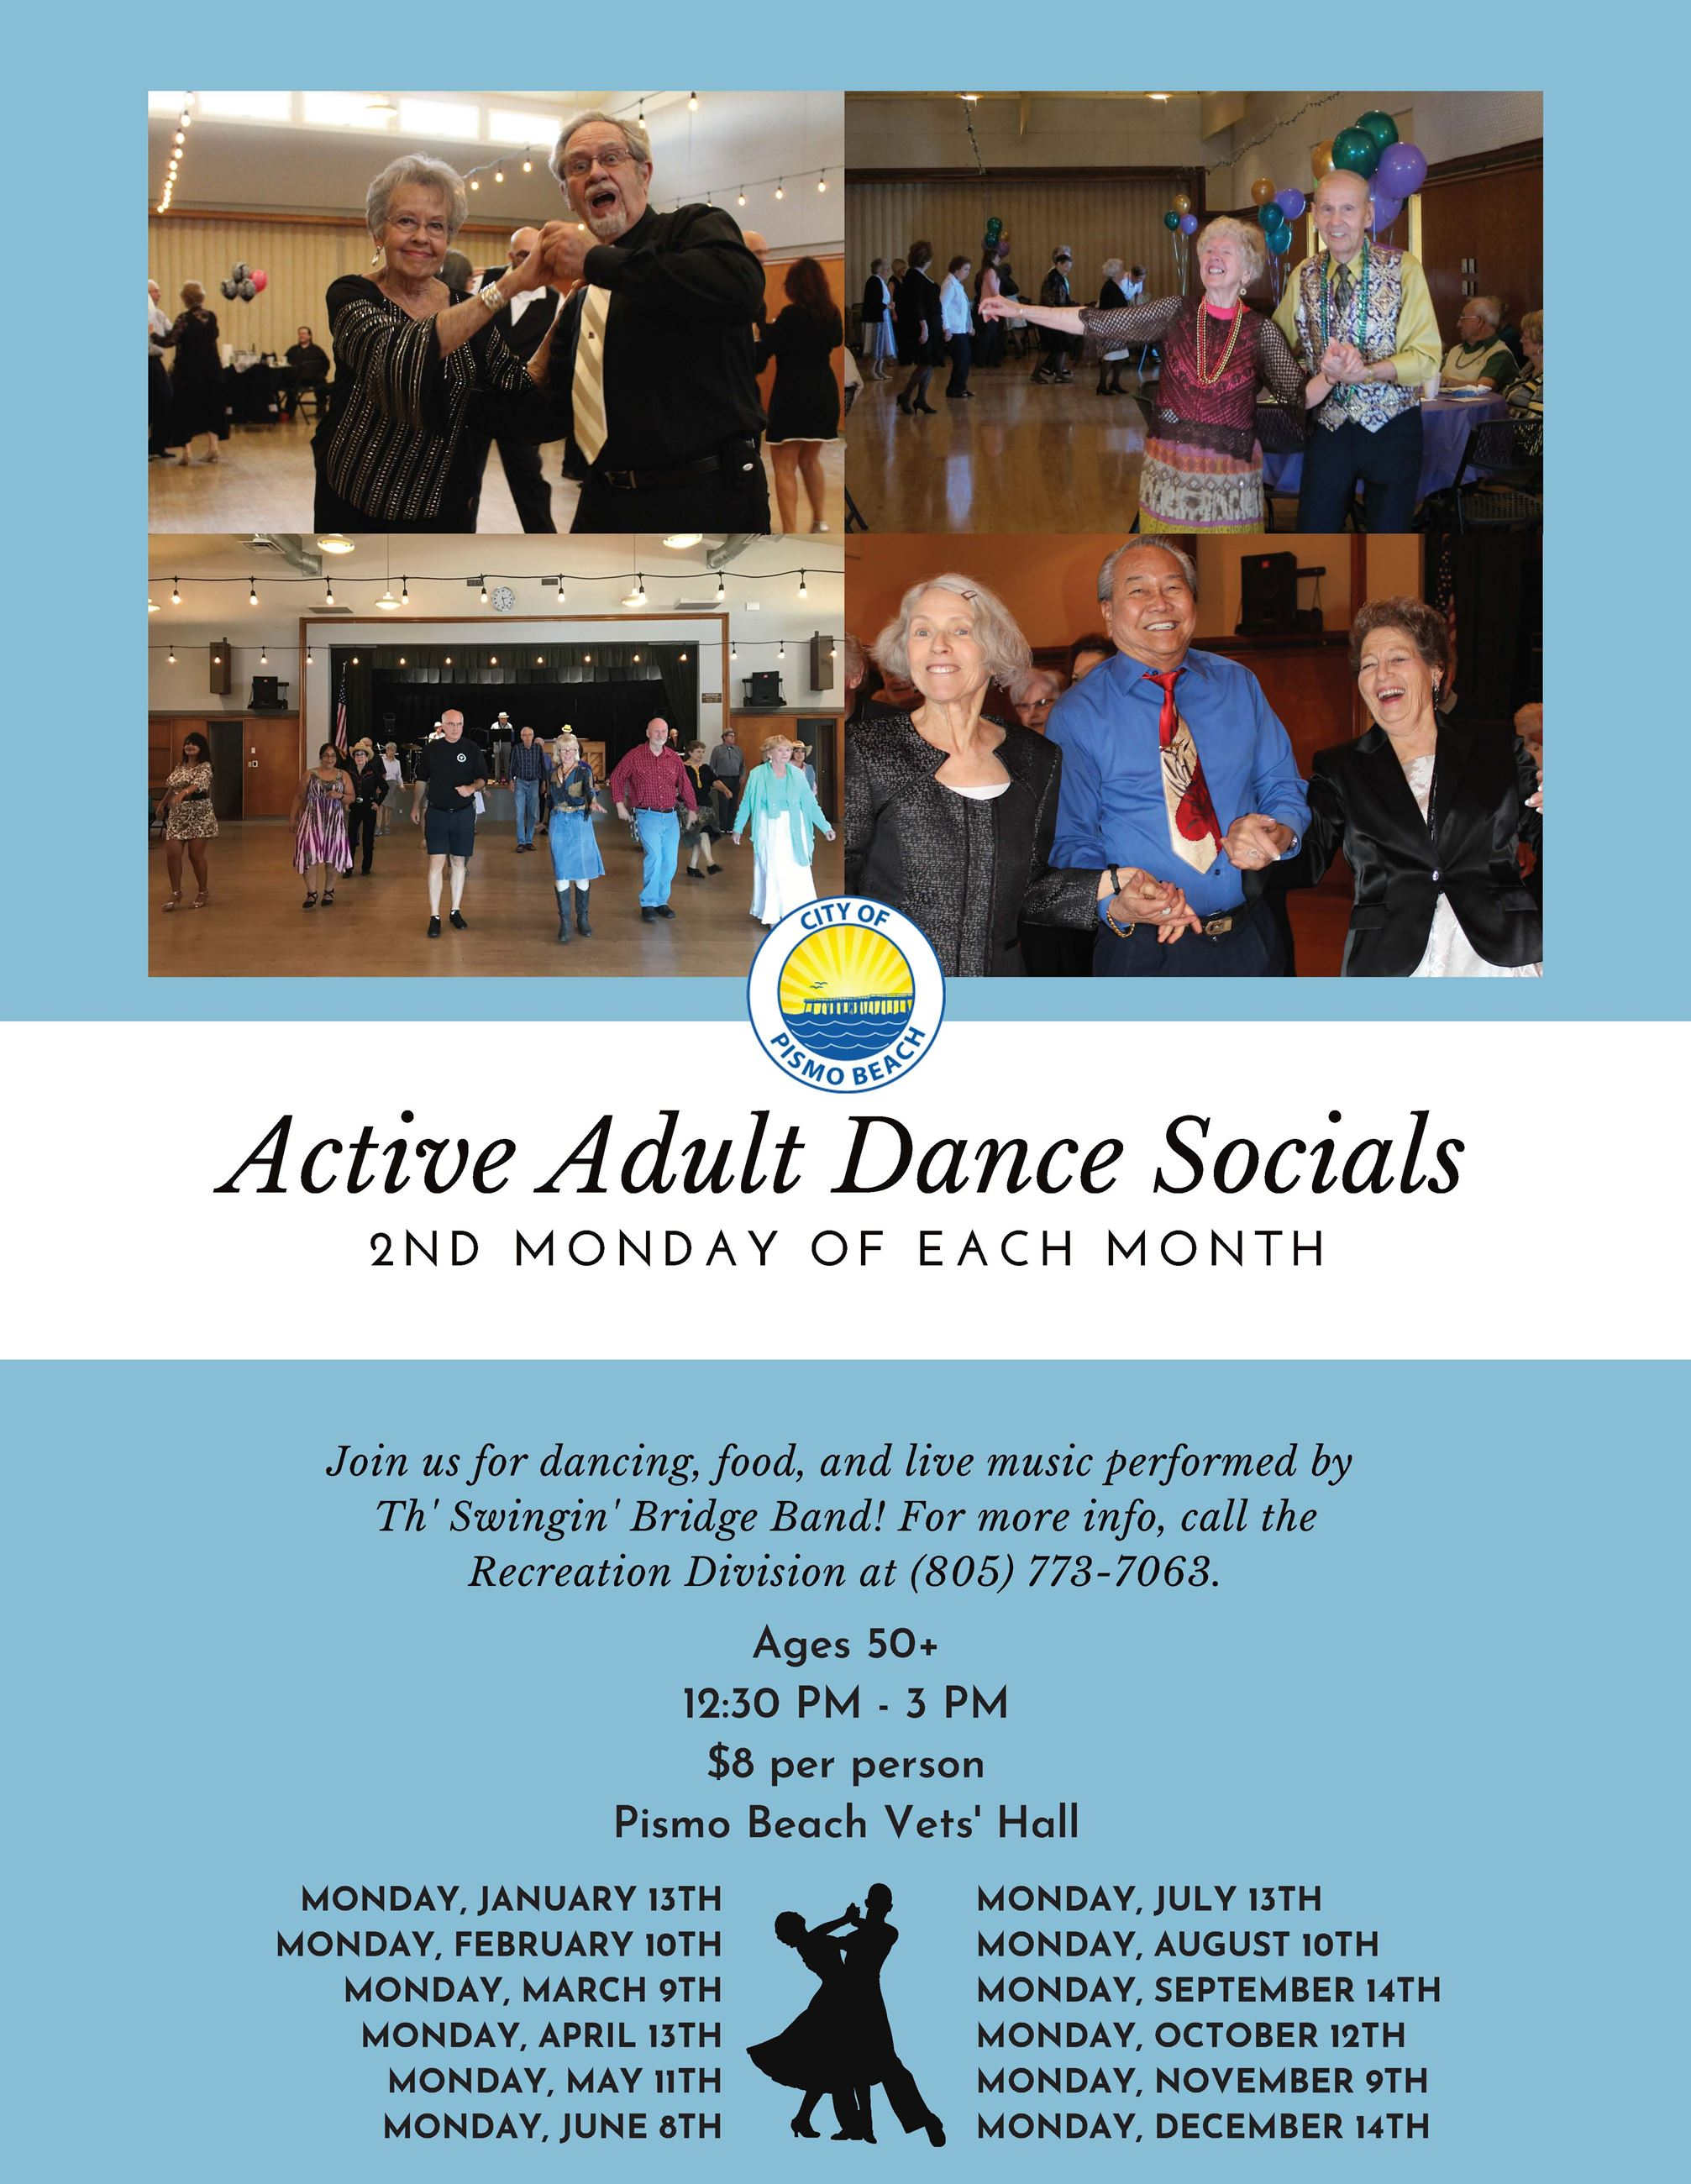 Active Adult Dance Socials 2020